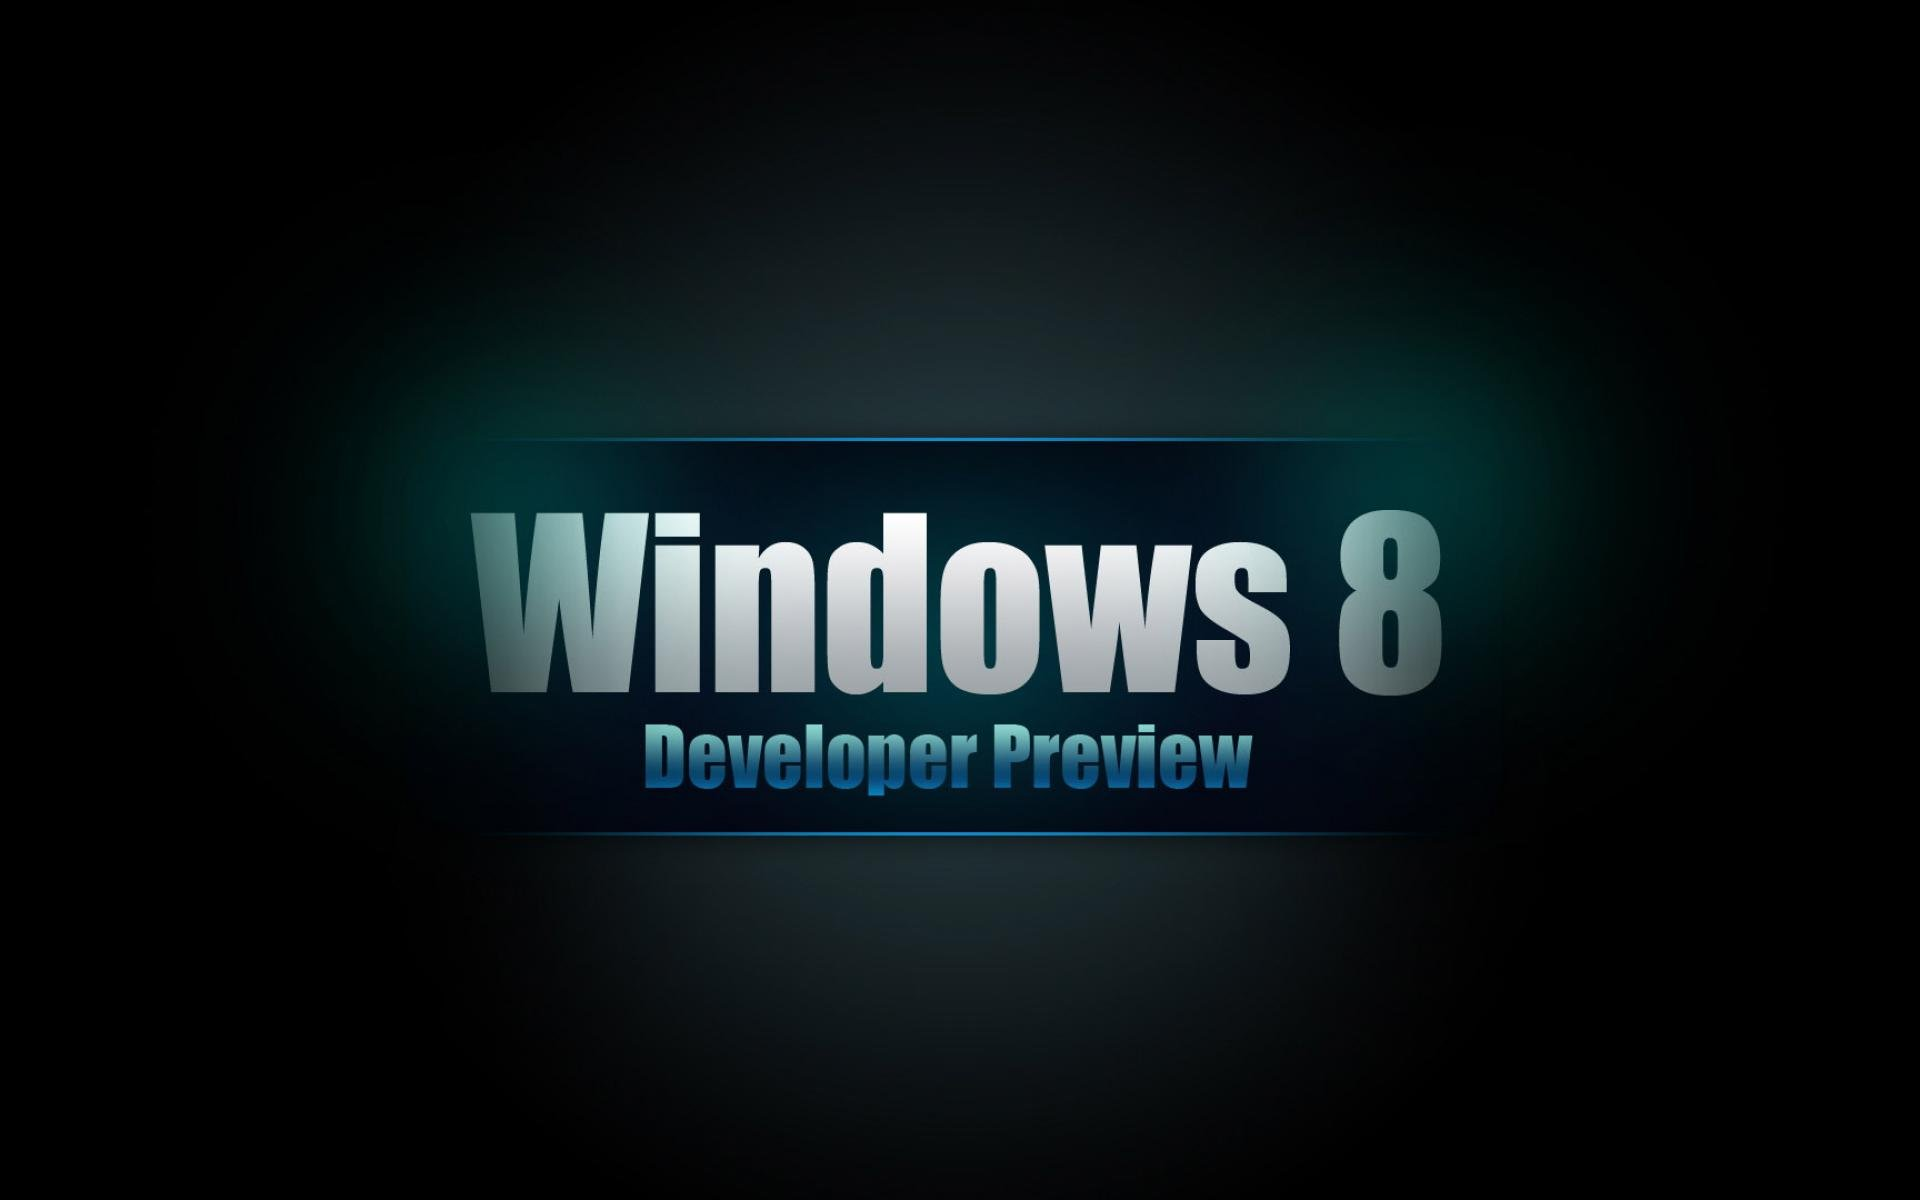 windows developer wallpapers wallpaper original 1920x1200 1920x1200